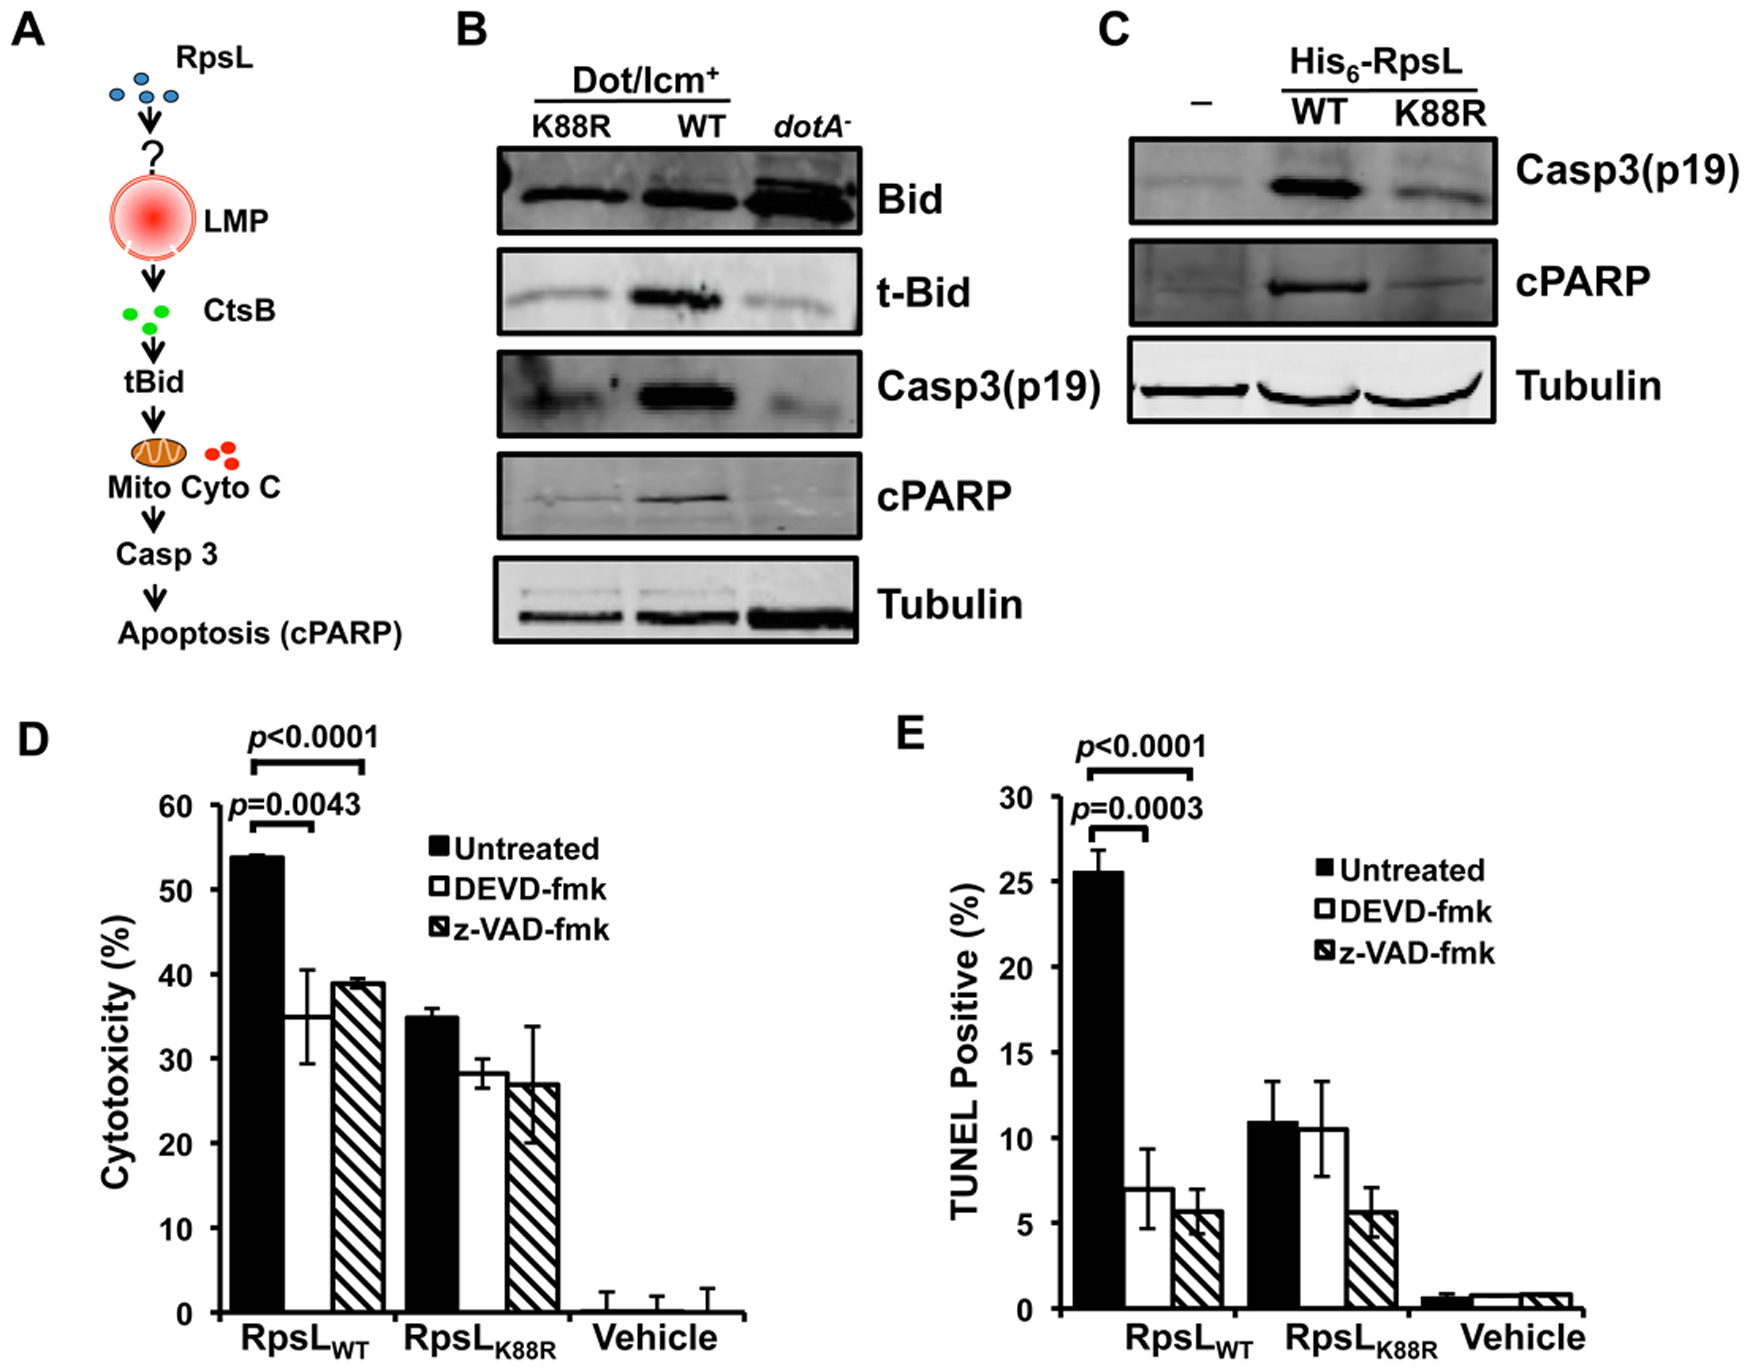 The classic apoptosis pathway is involved in the cell death induced by RpsL.